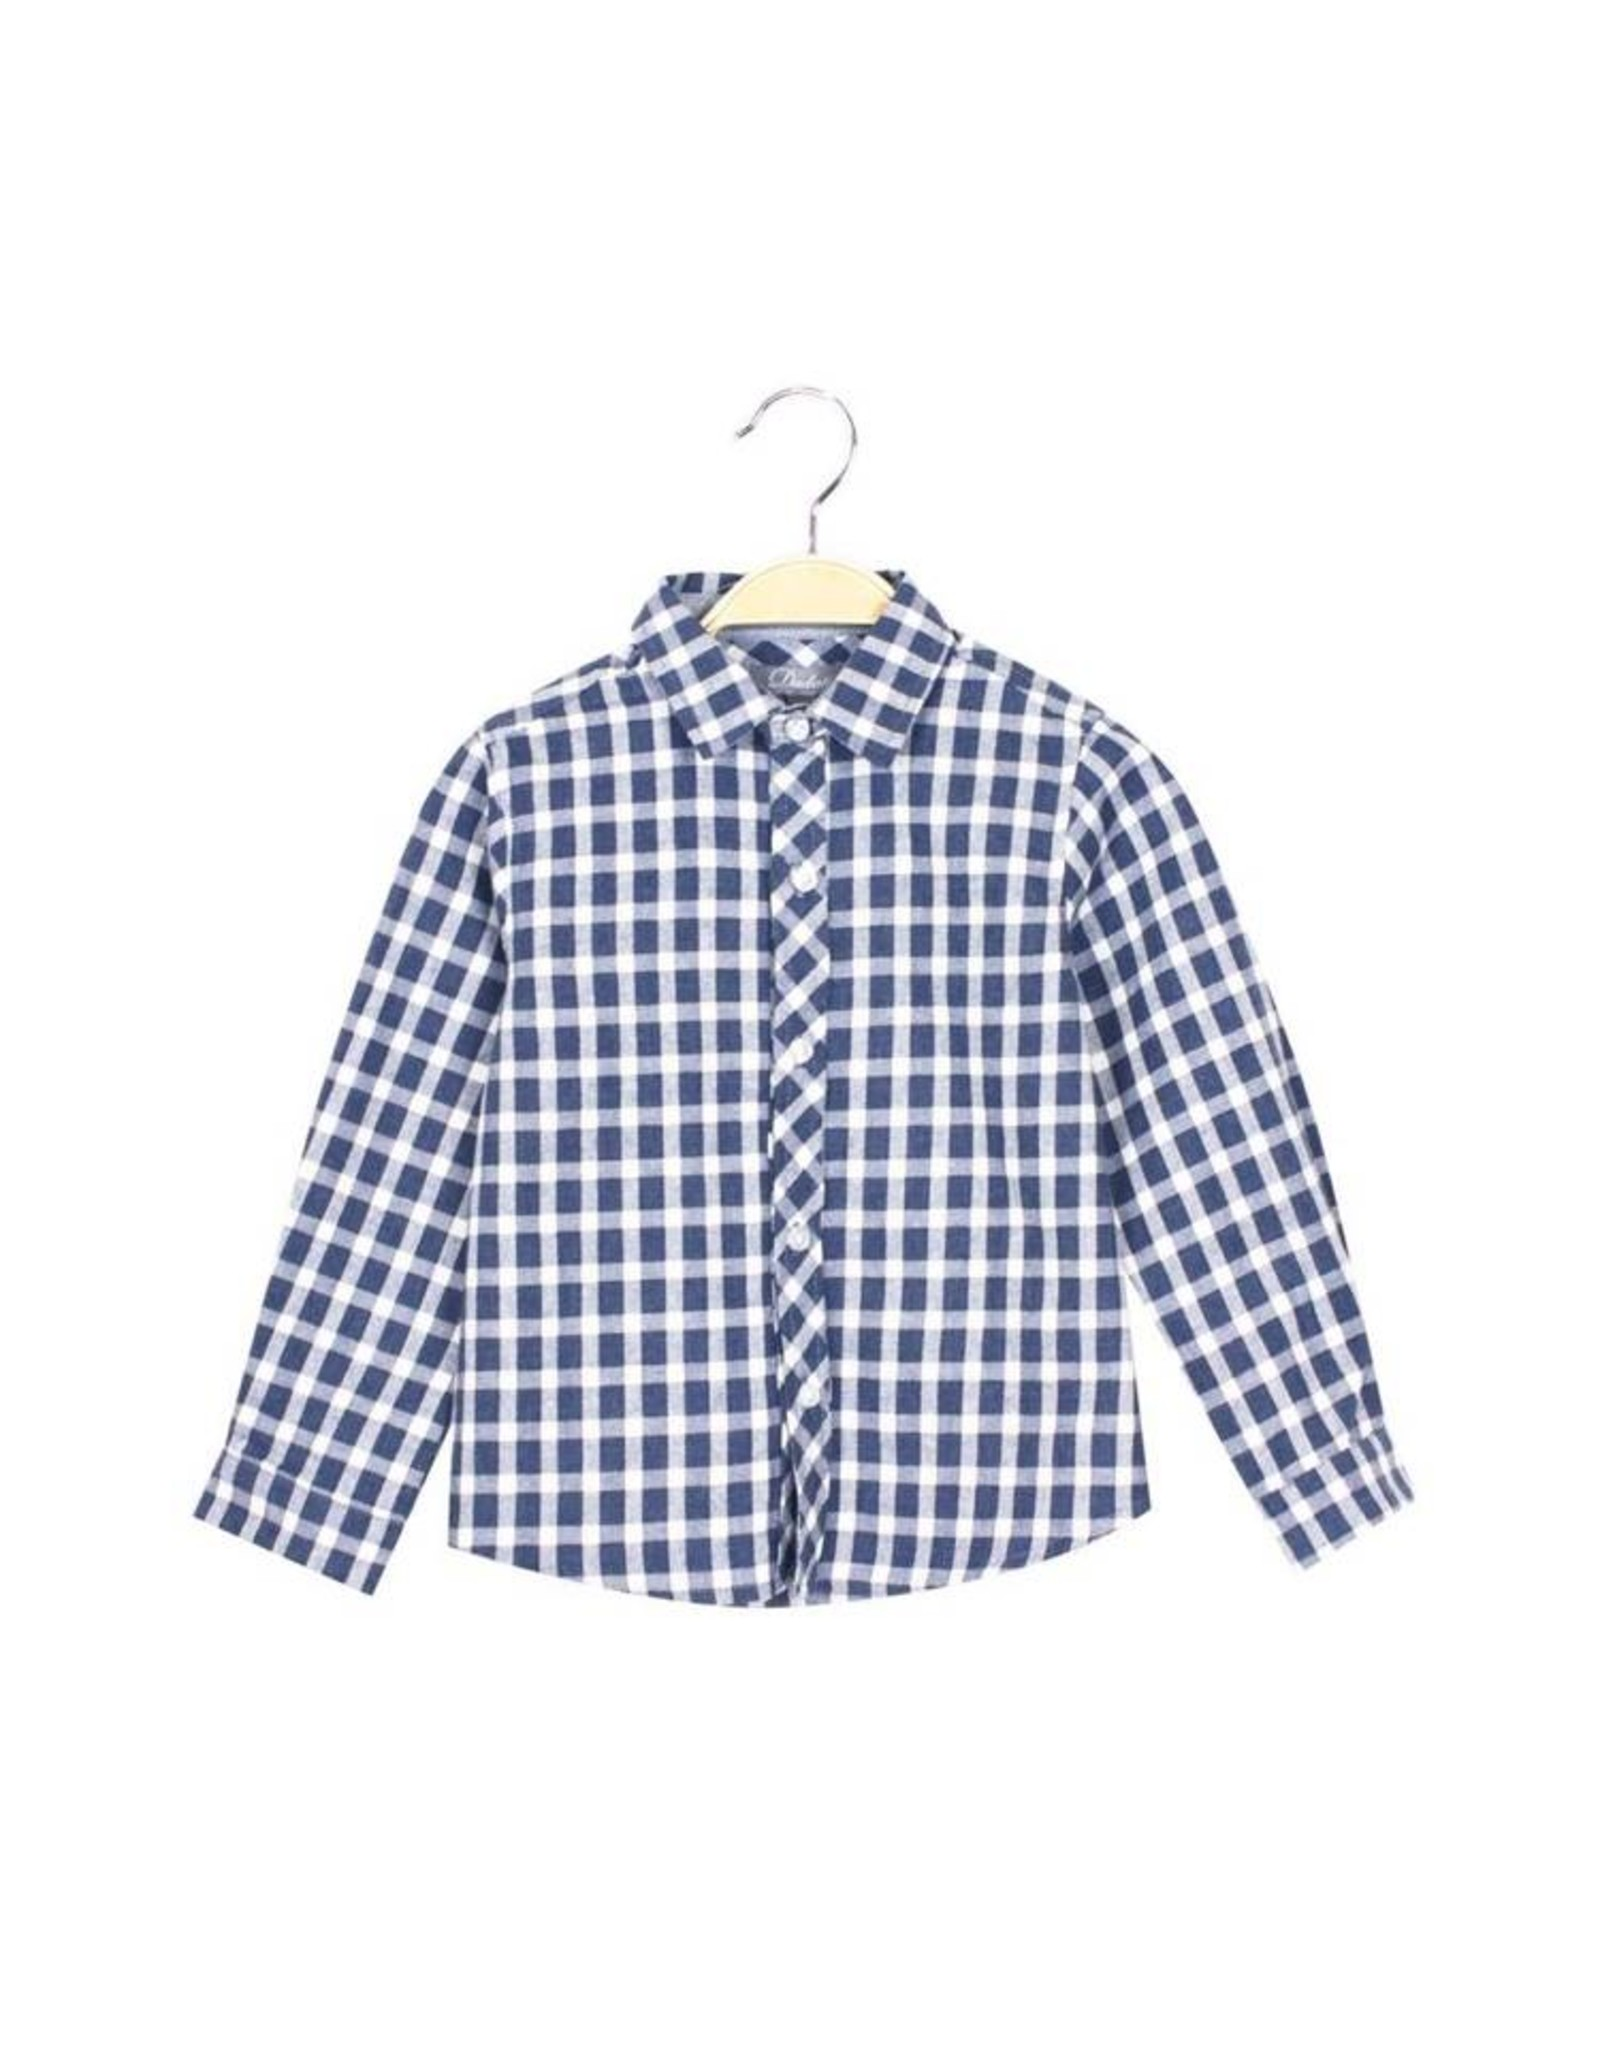 DADATI Blue Gingham Shirt